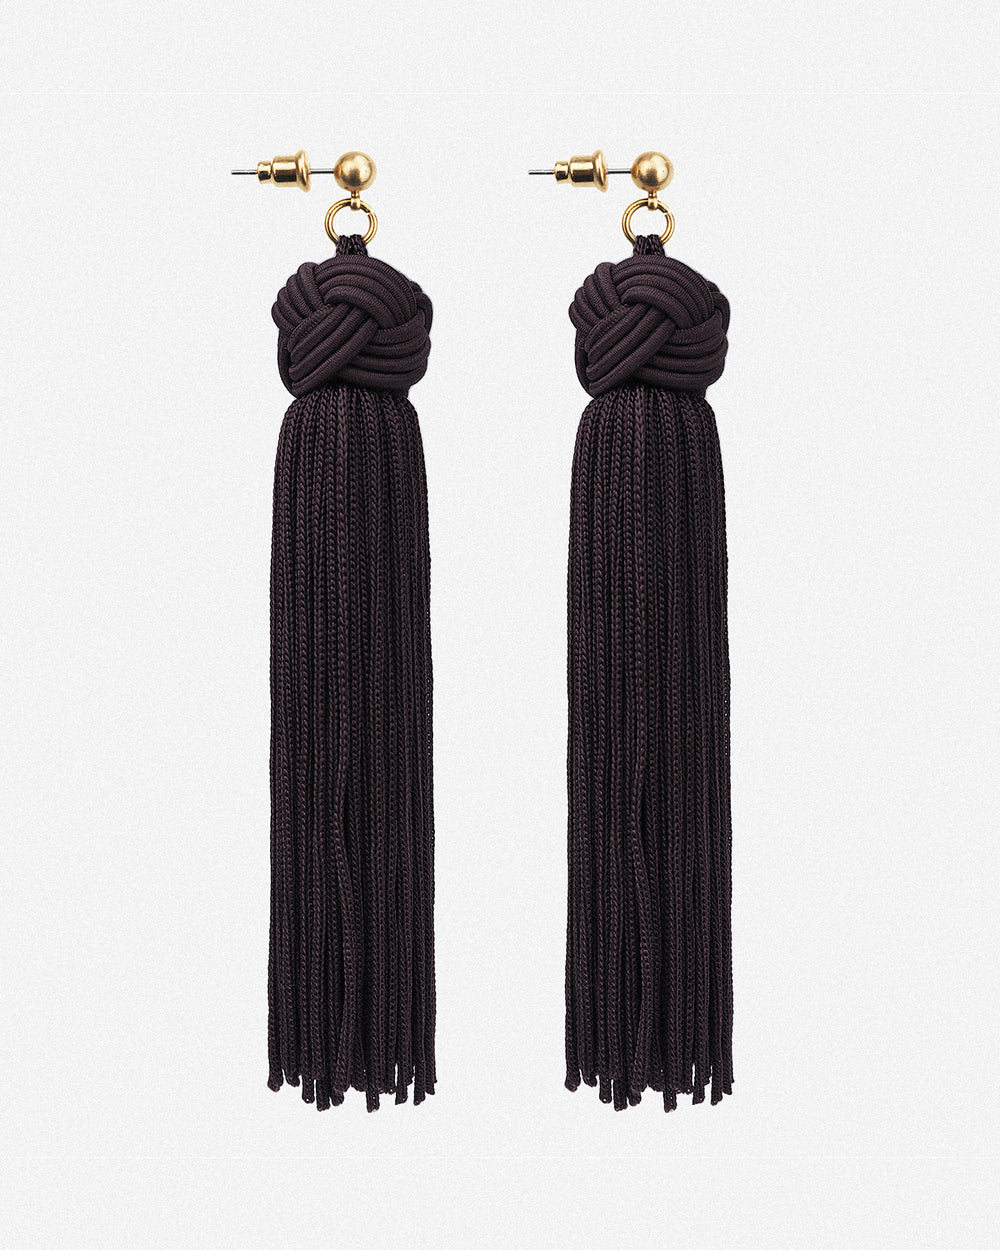 Johanna Silky Tassel Drop Earrings - Black